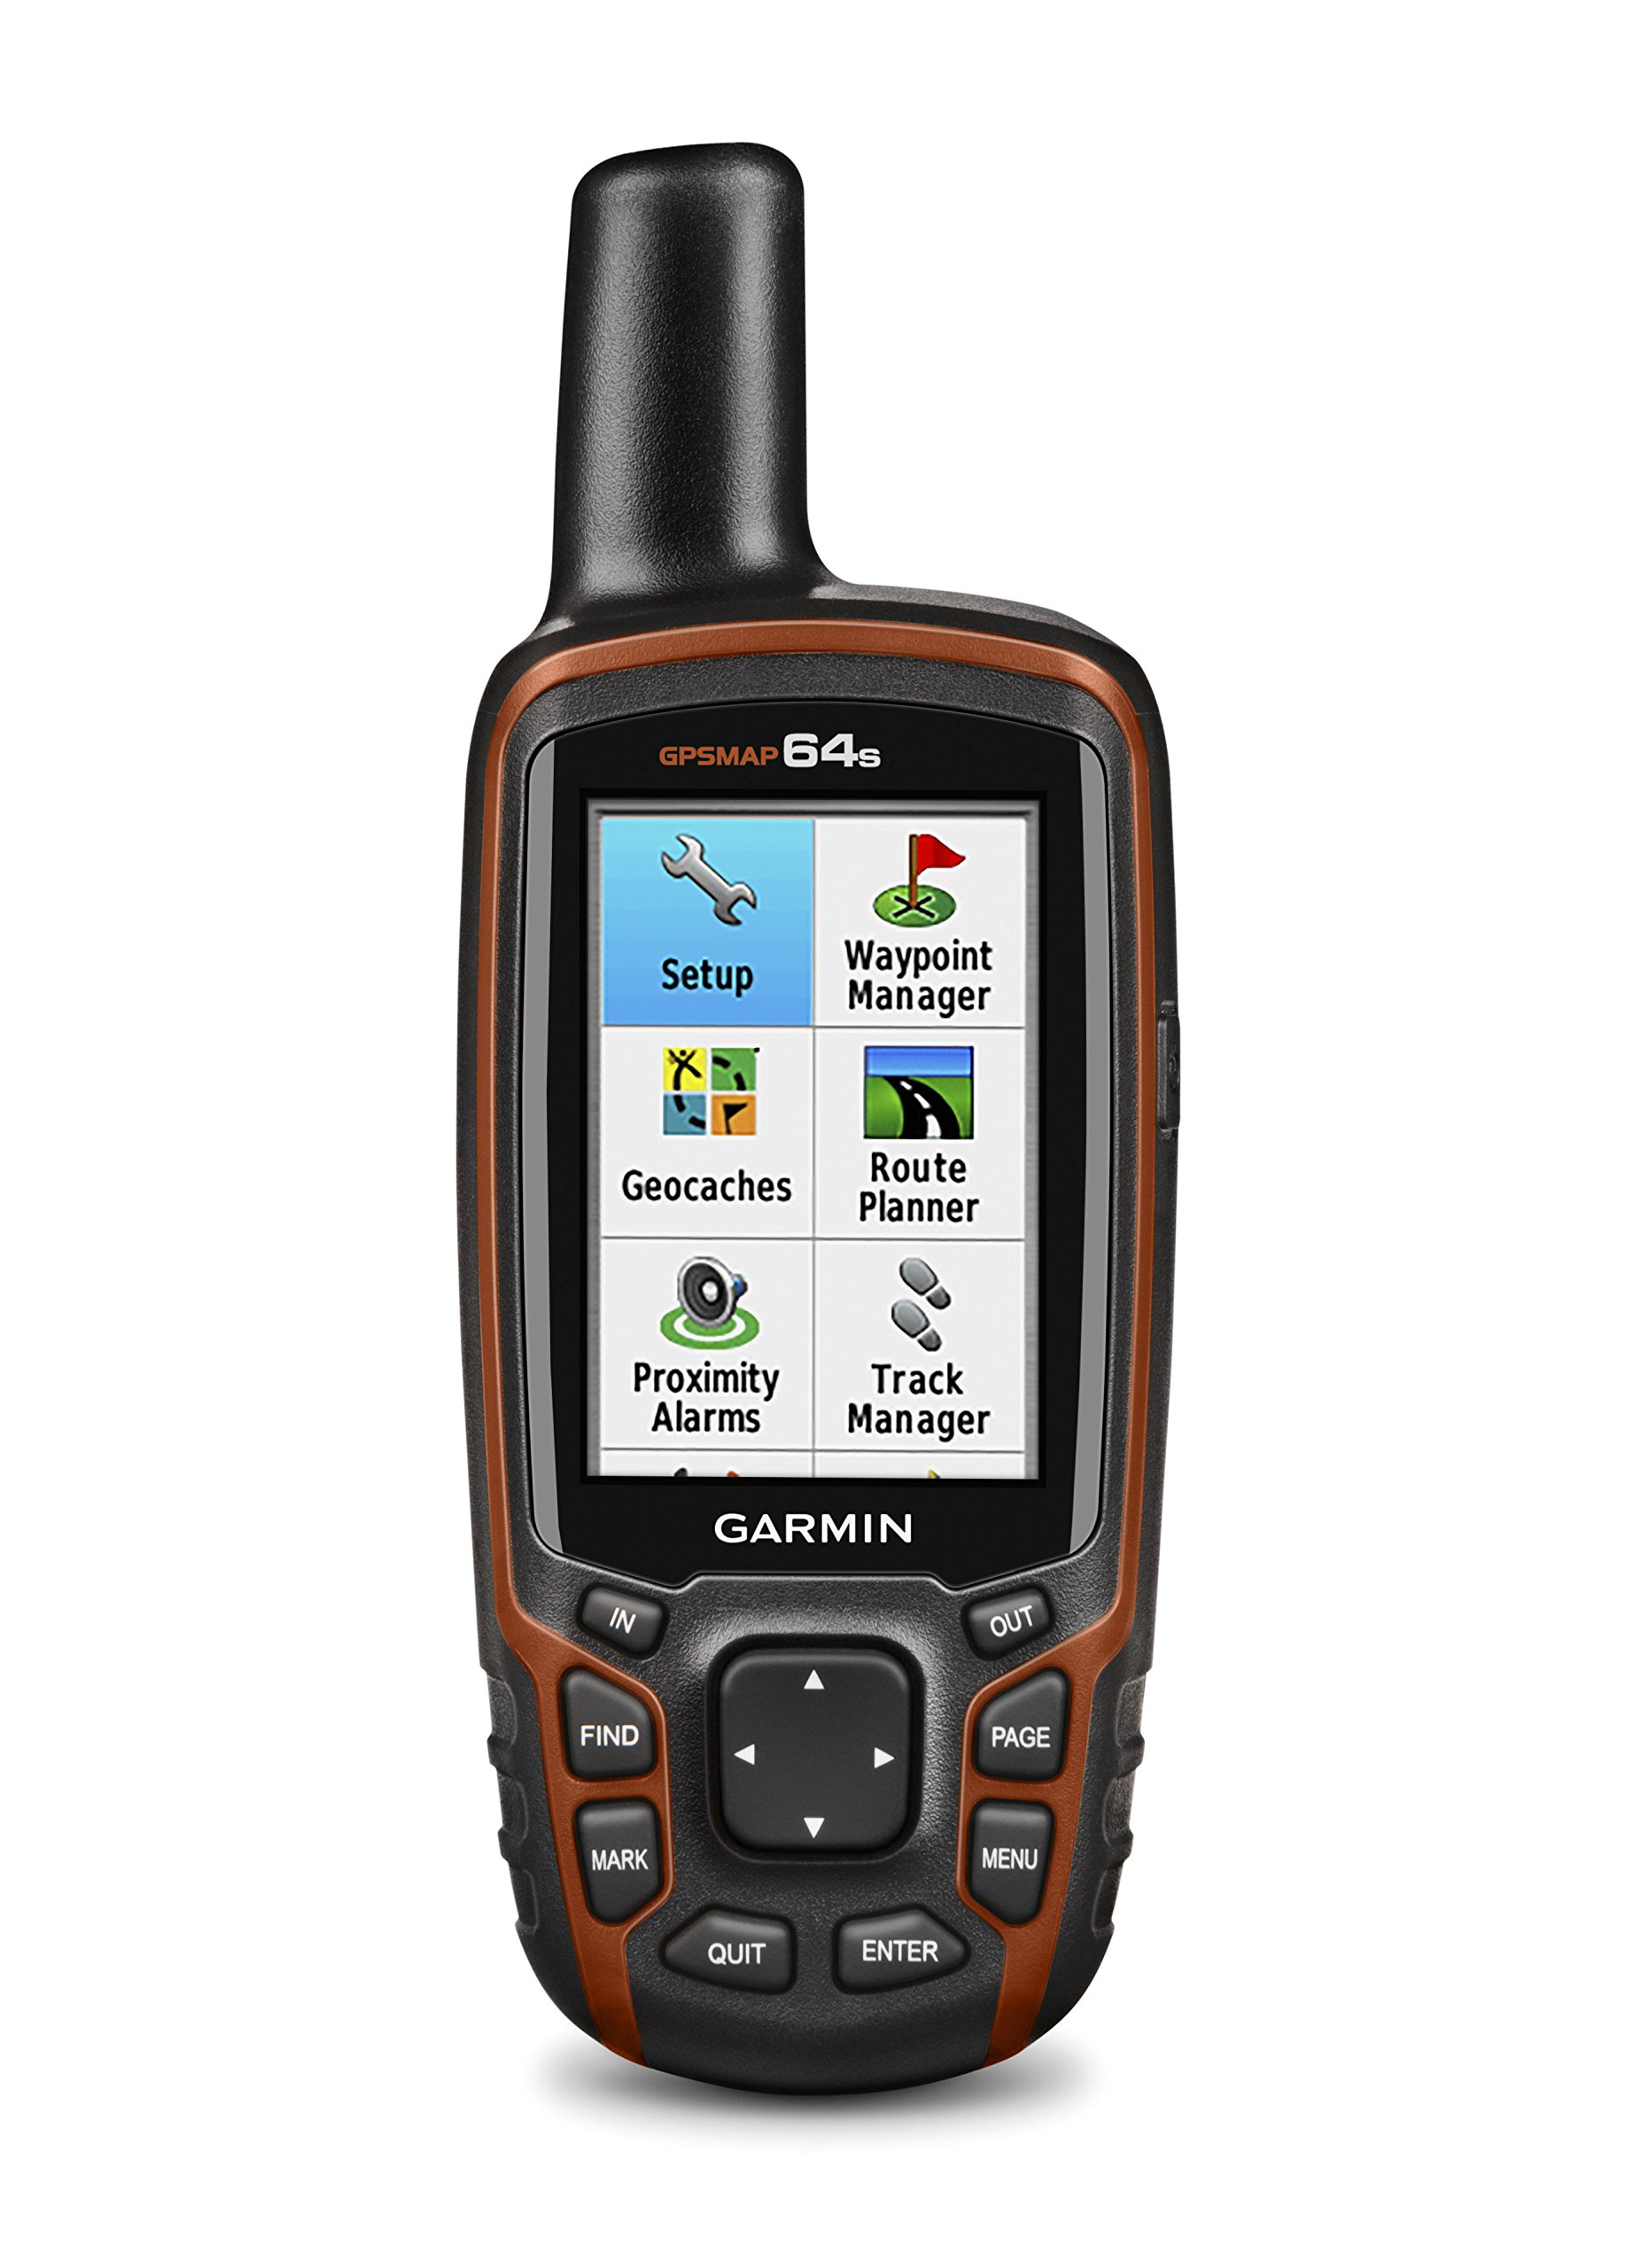 Garmin GPSMAP 64s Handheld Navigator,Black/Red 4